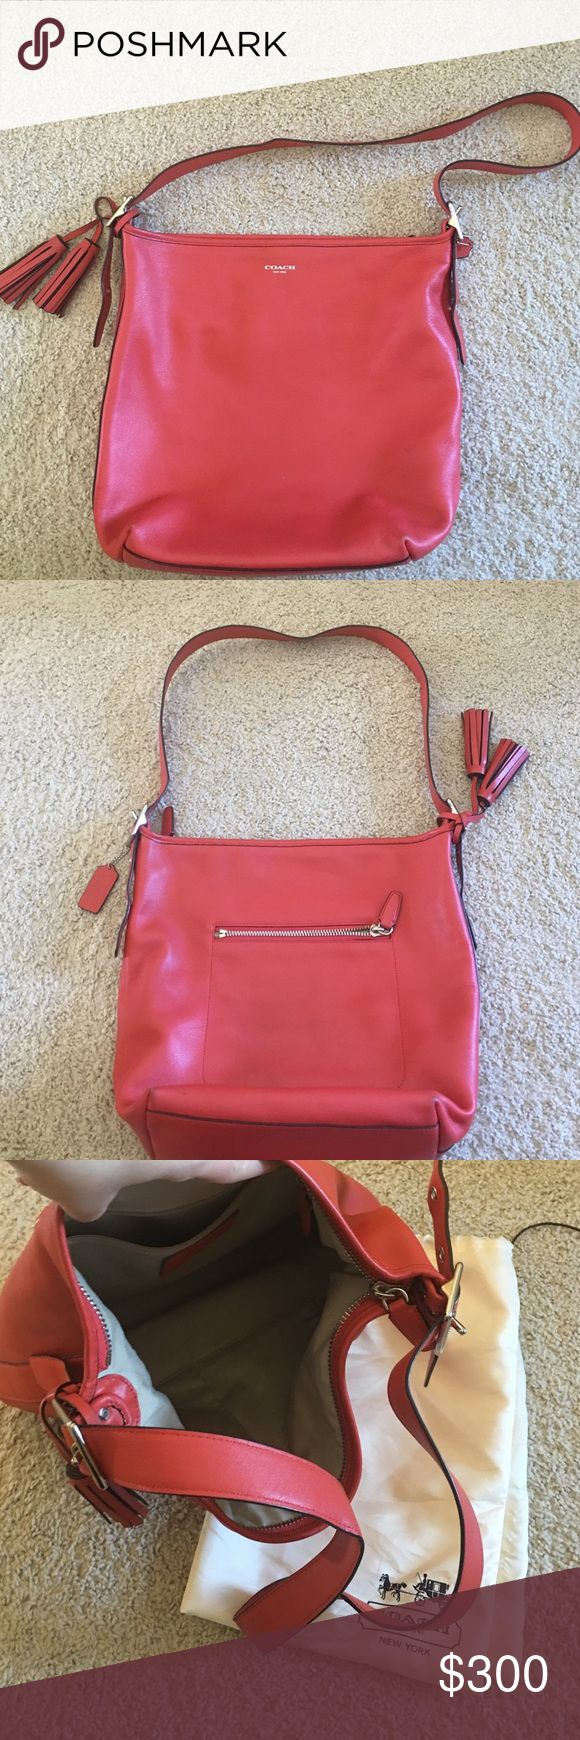 Coach bag from the legacy collection Offers welcomed!!!Used maybe 10 times if not less. Very little use on the bottom corners. Comes with dust bag Coach Bags